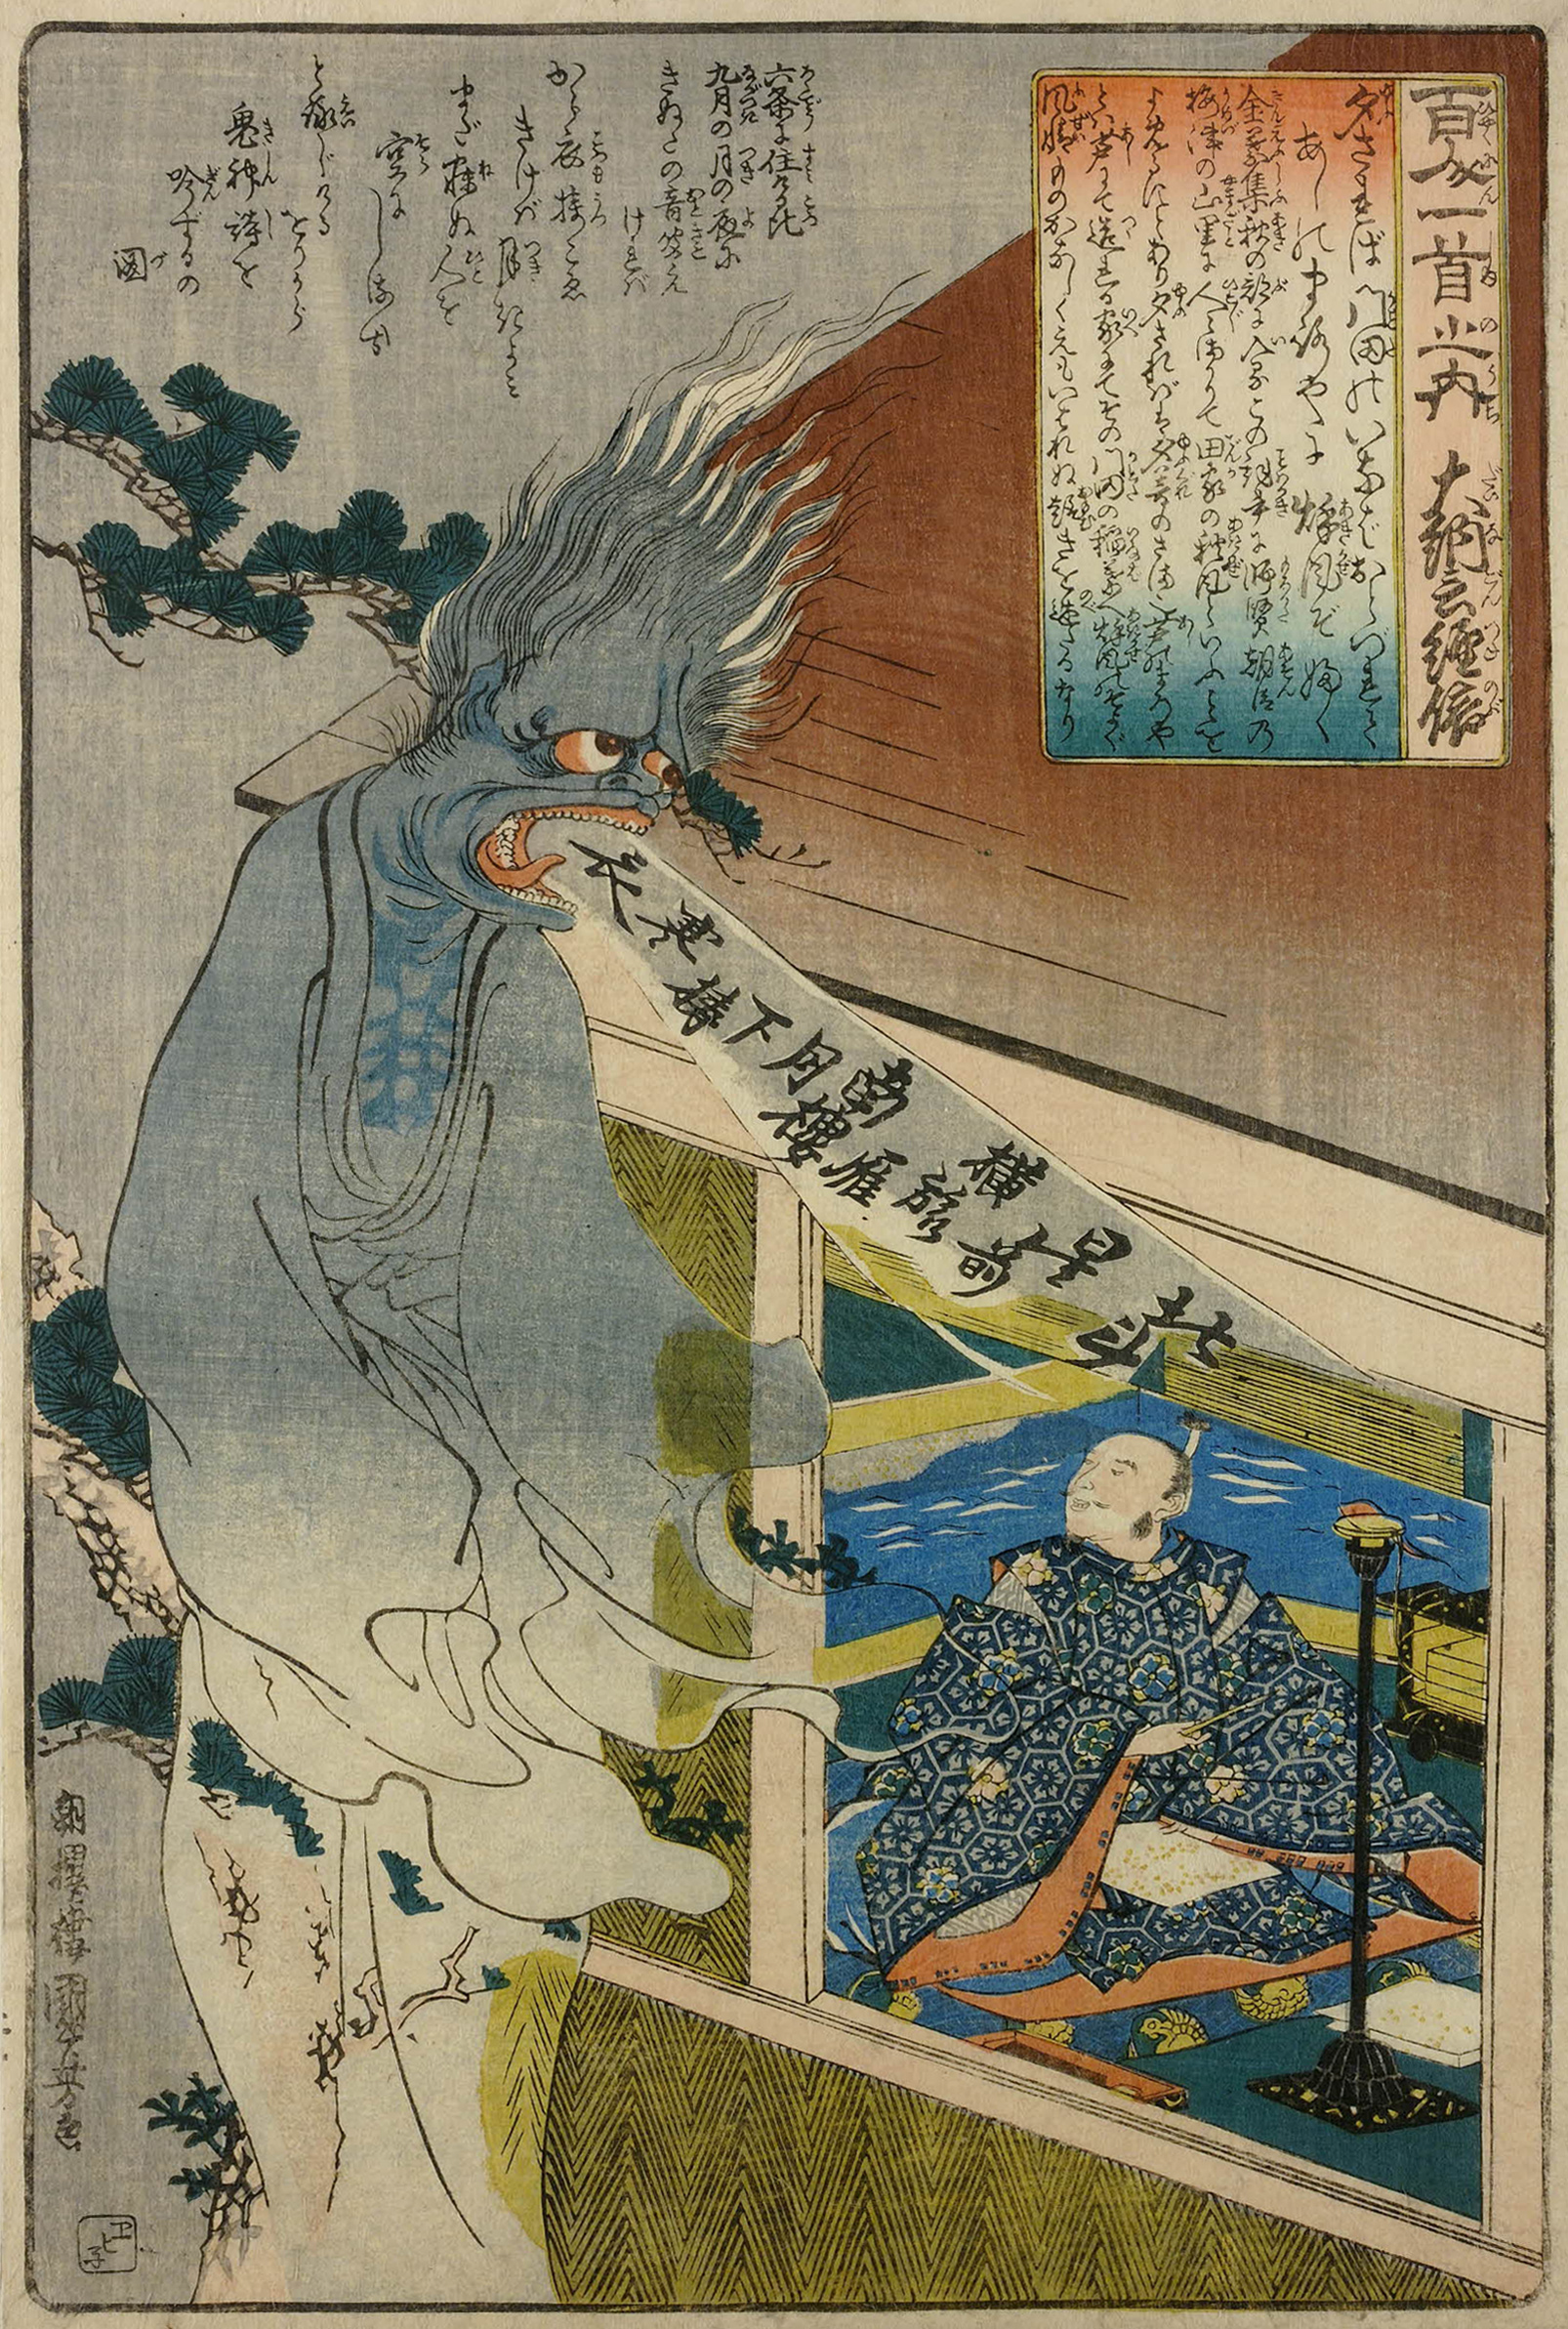 The Poet Dainagon Sees an Apparition, 1860 — Utagawa Kuniyoshi